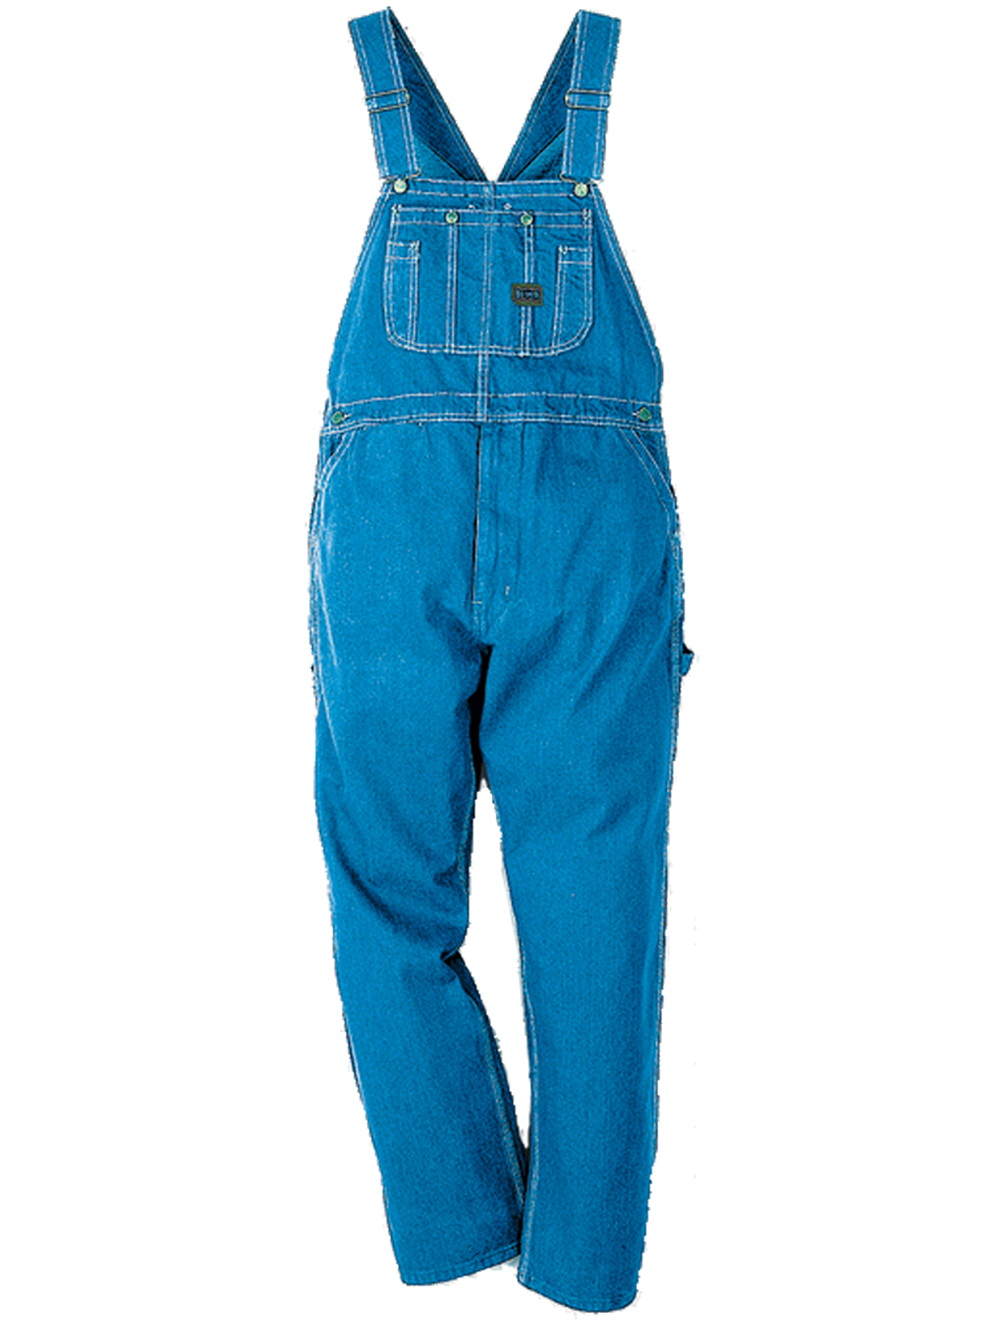 Walls Mens Big Smith Relaxed Zip-Fly Bib Overalls at Sears.com